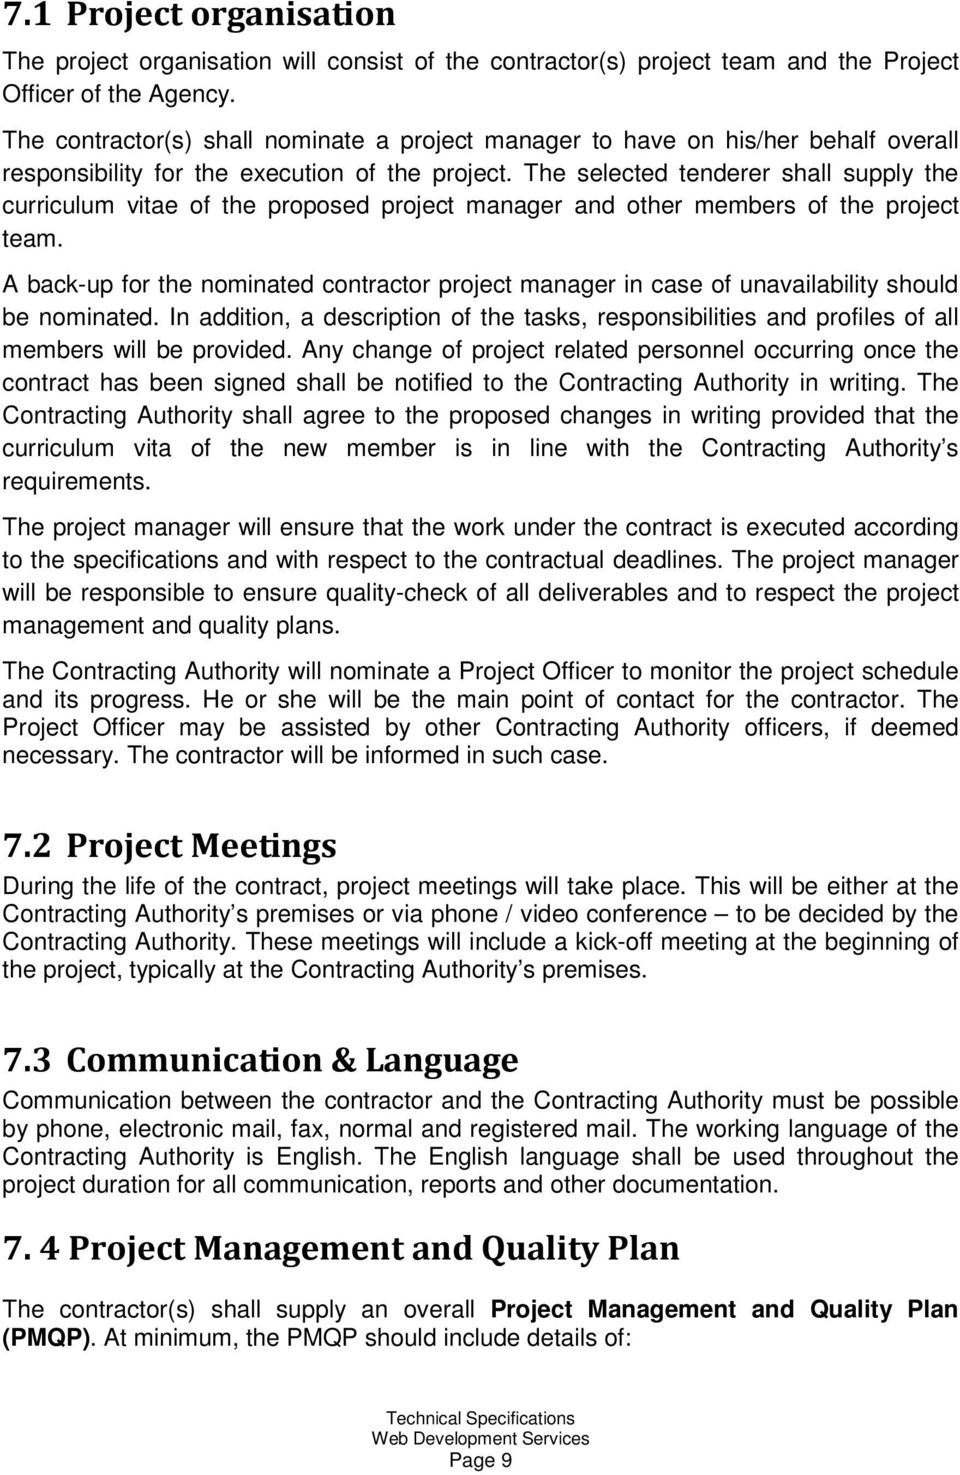 The selected tenderer shall supply the curriculum vitae of the proposed project manager and other members of the project team.